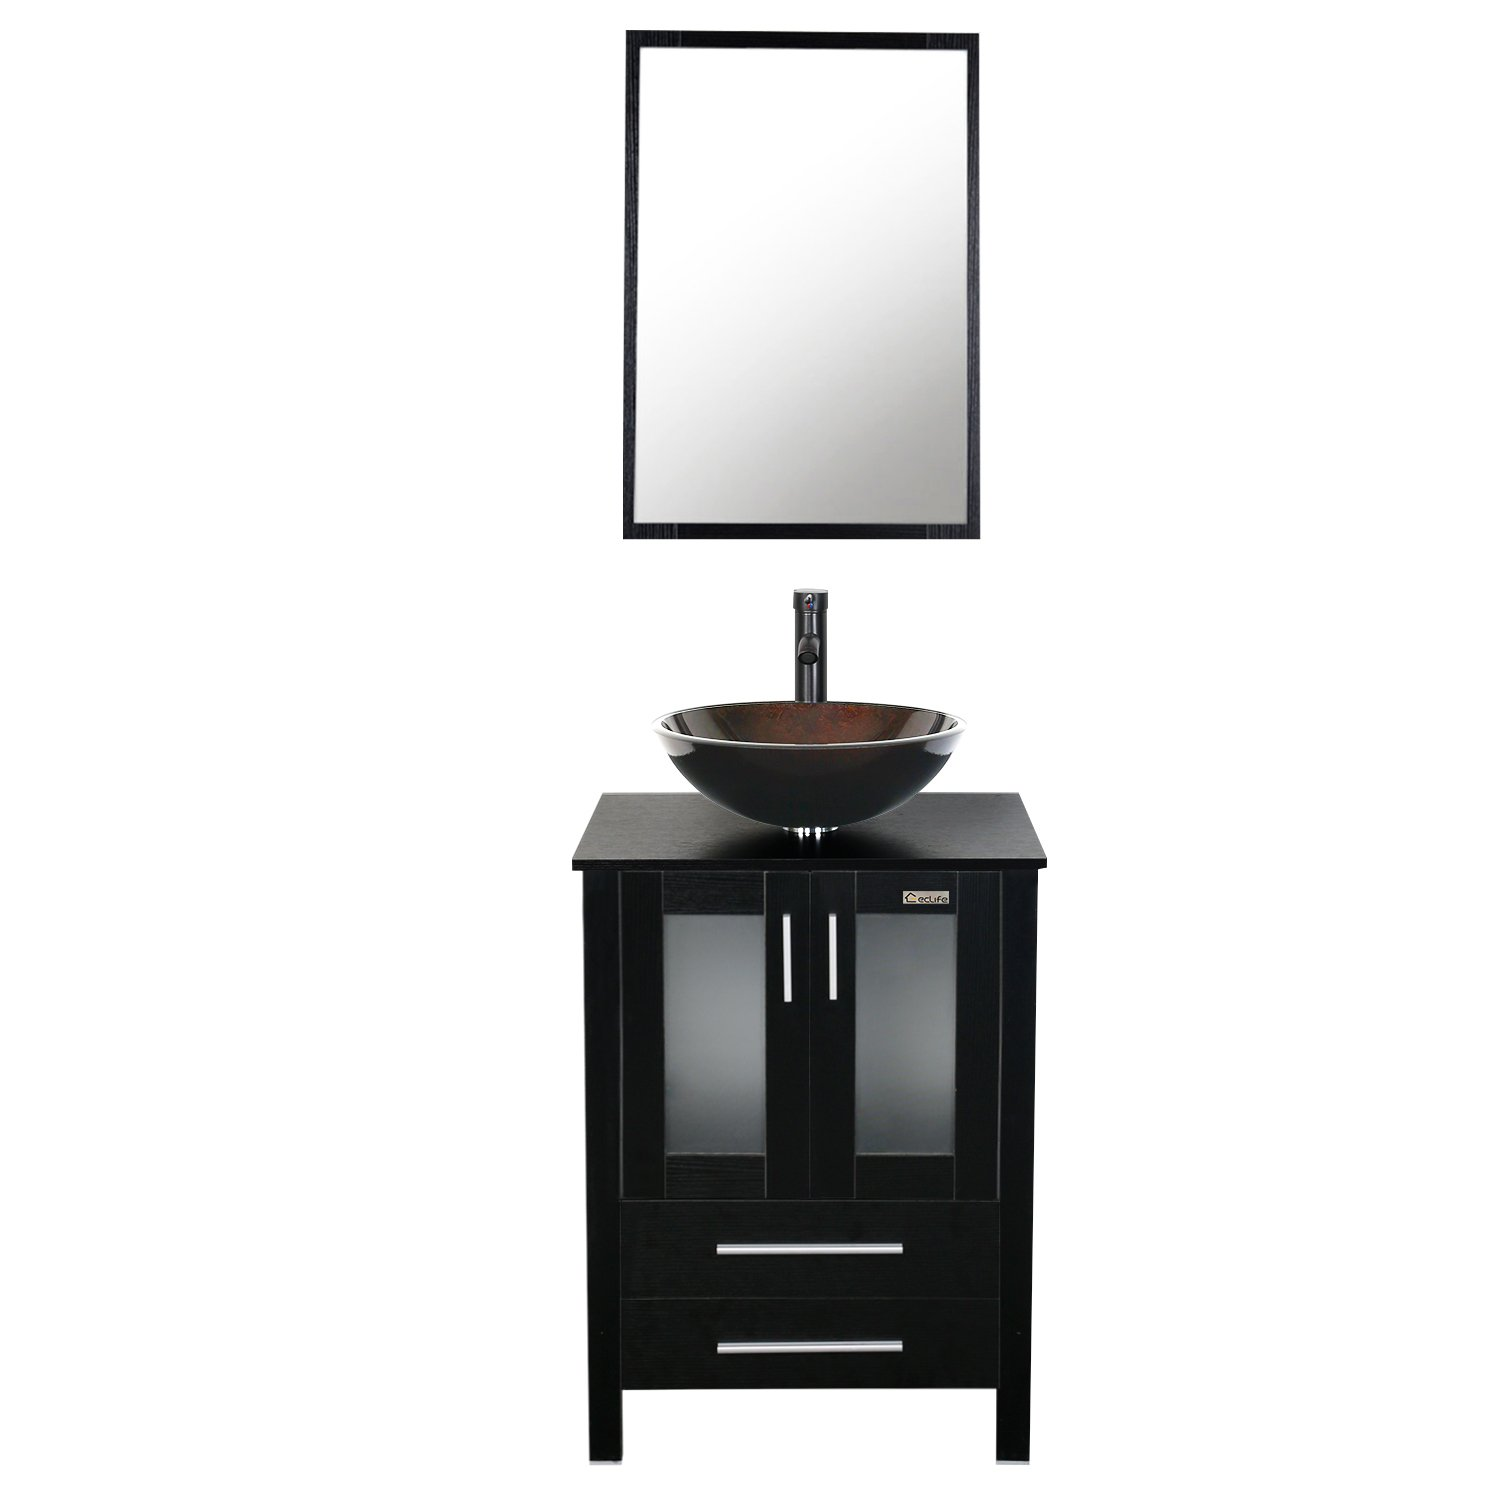 mirror touch impressions pro vanity amazon costco